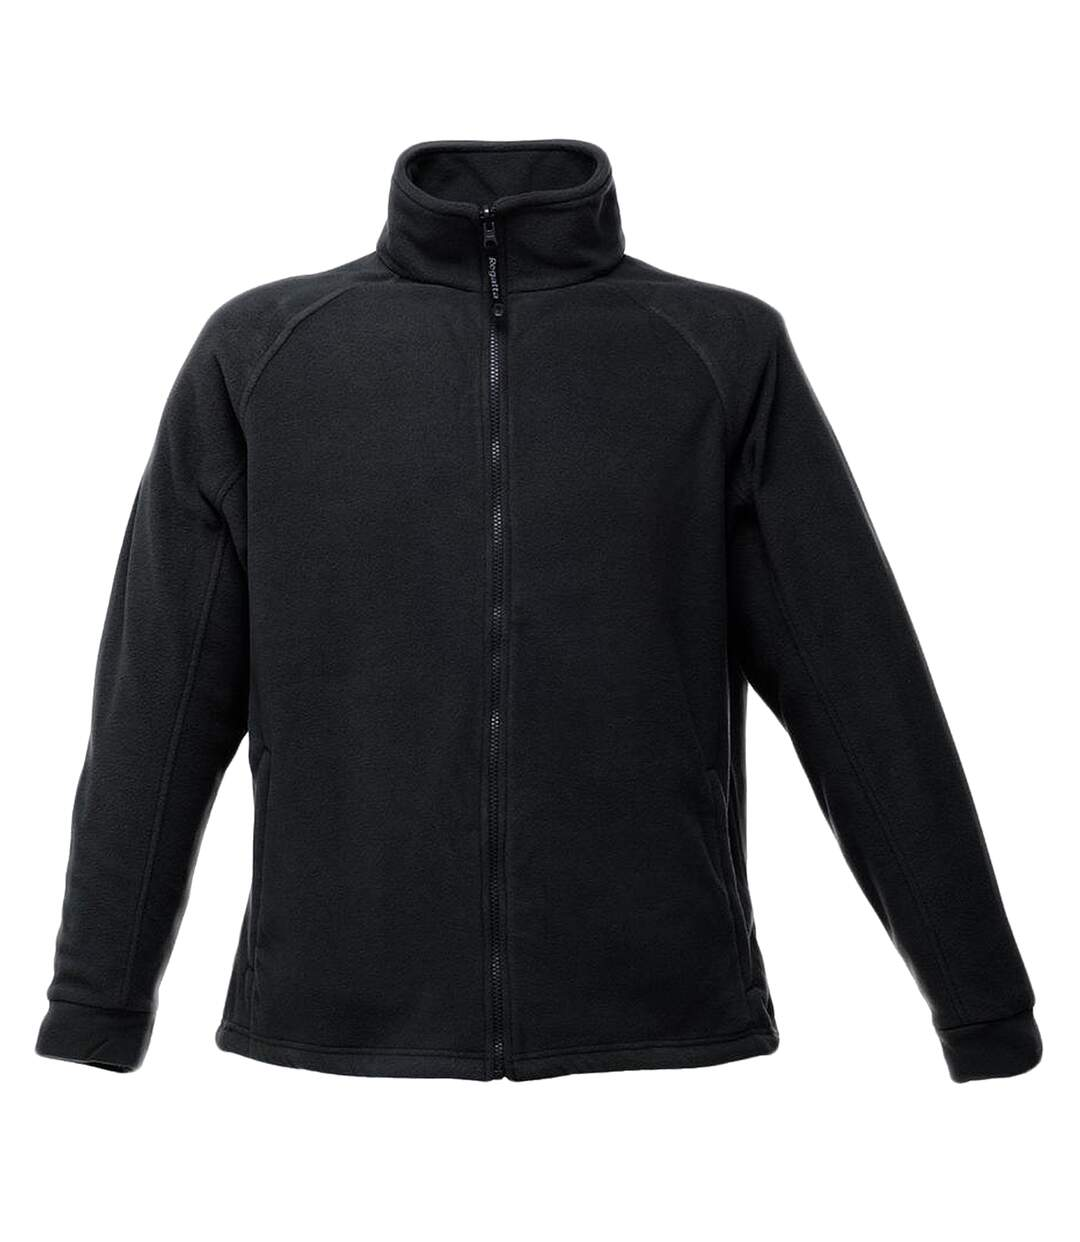 Regatta Mens Thor 300 Full Zip Fleece Jacket (Black) - UTRG1533